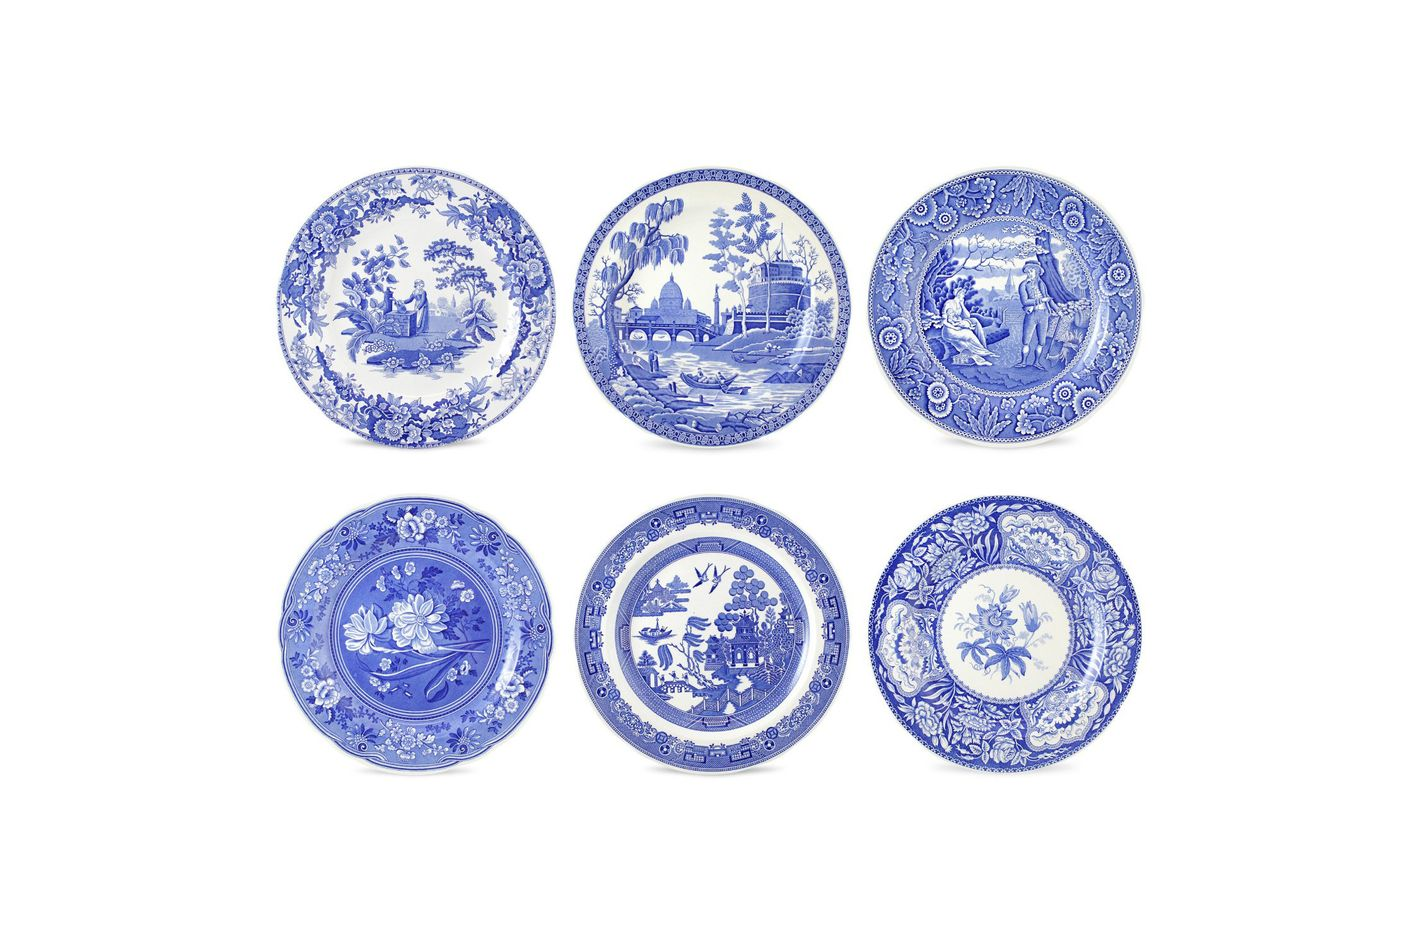 Spode Blue Room Georgian Plates, Set of 6